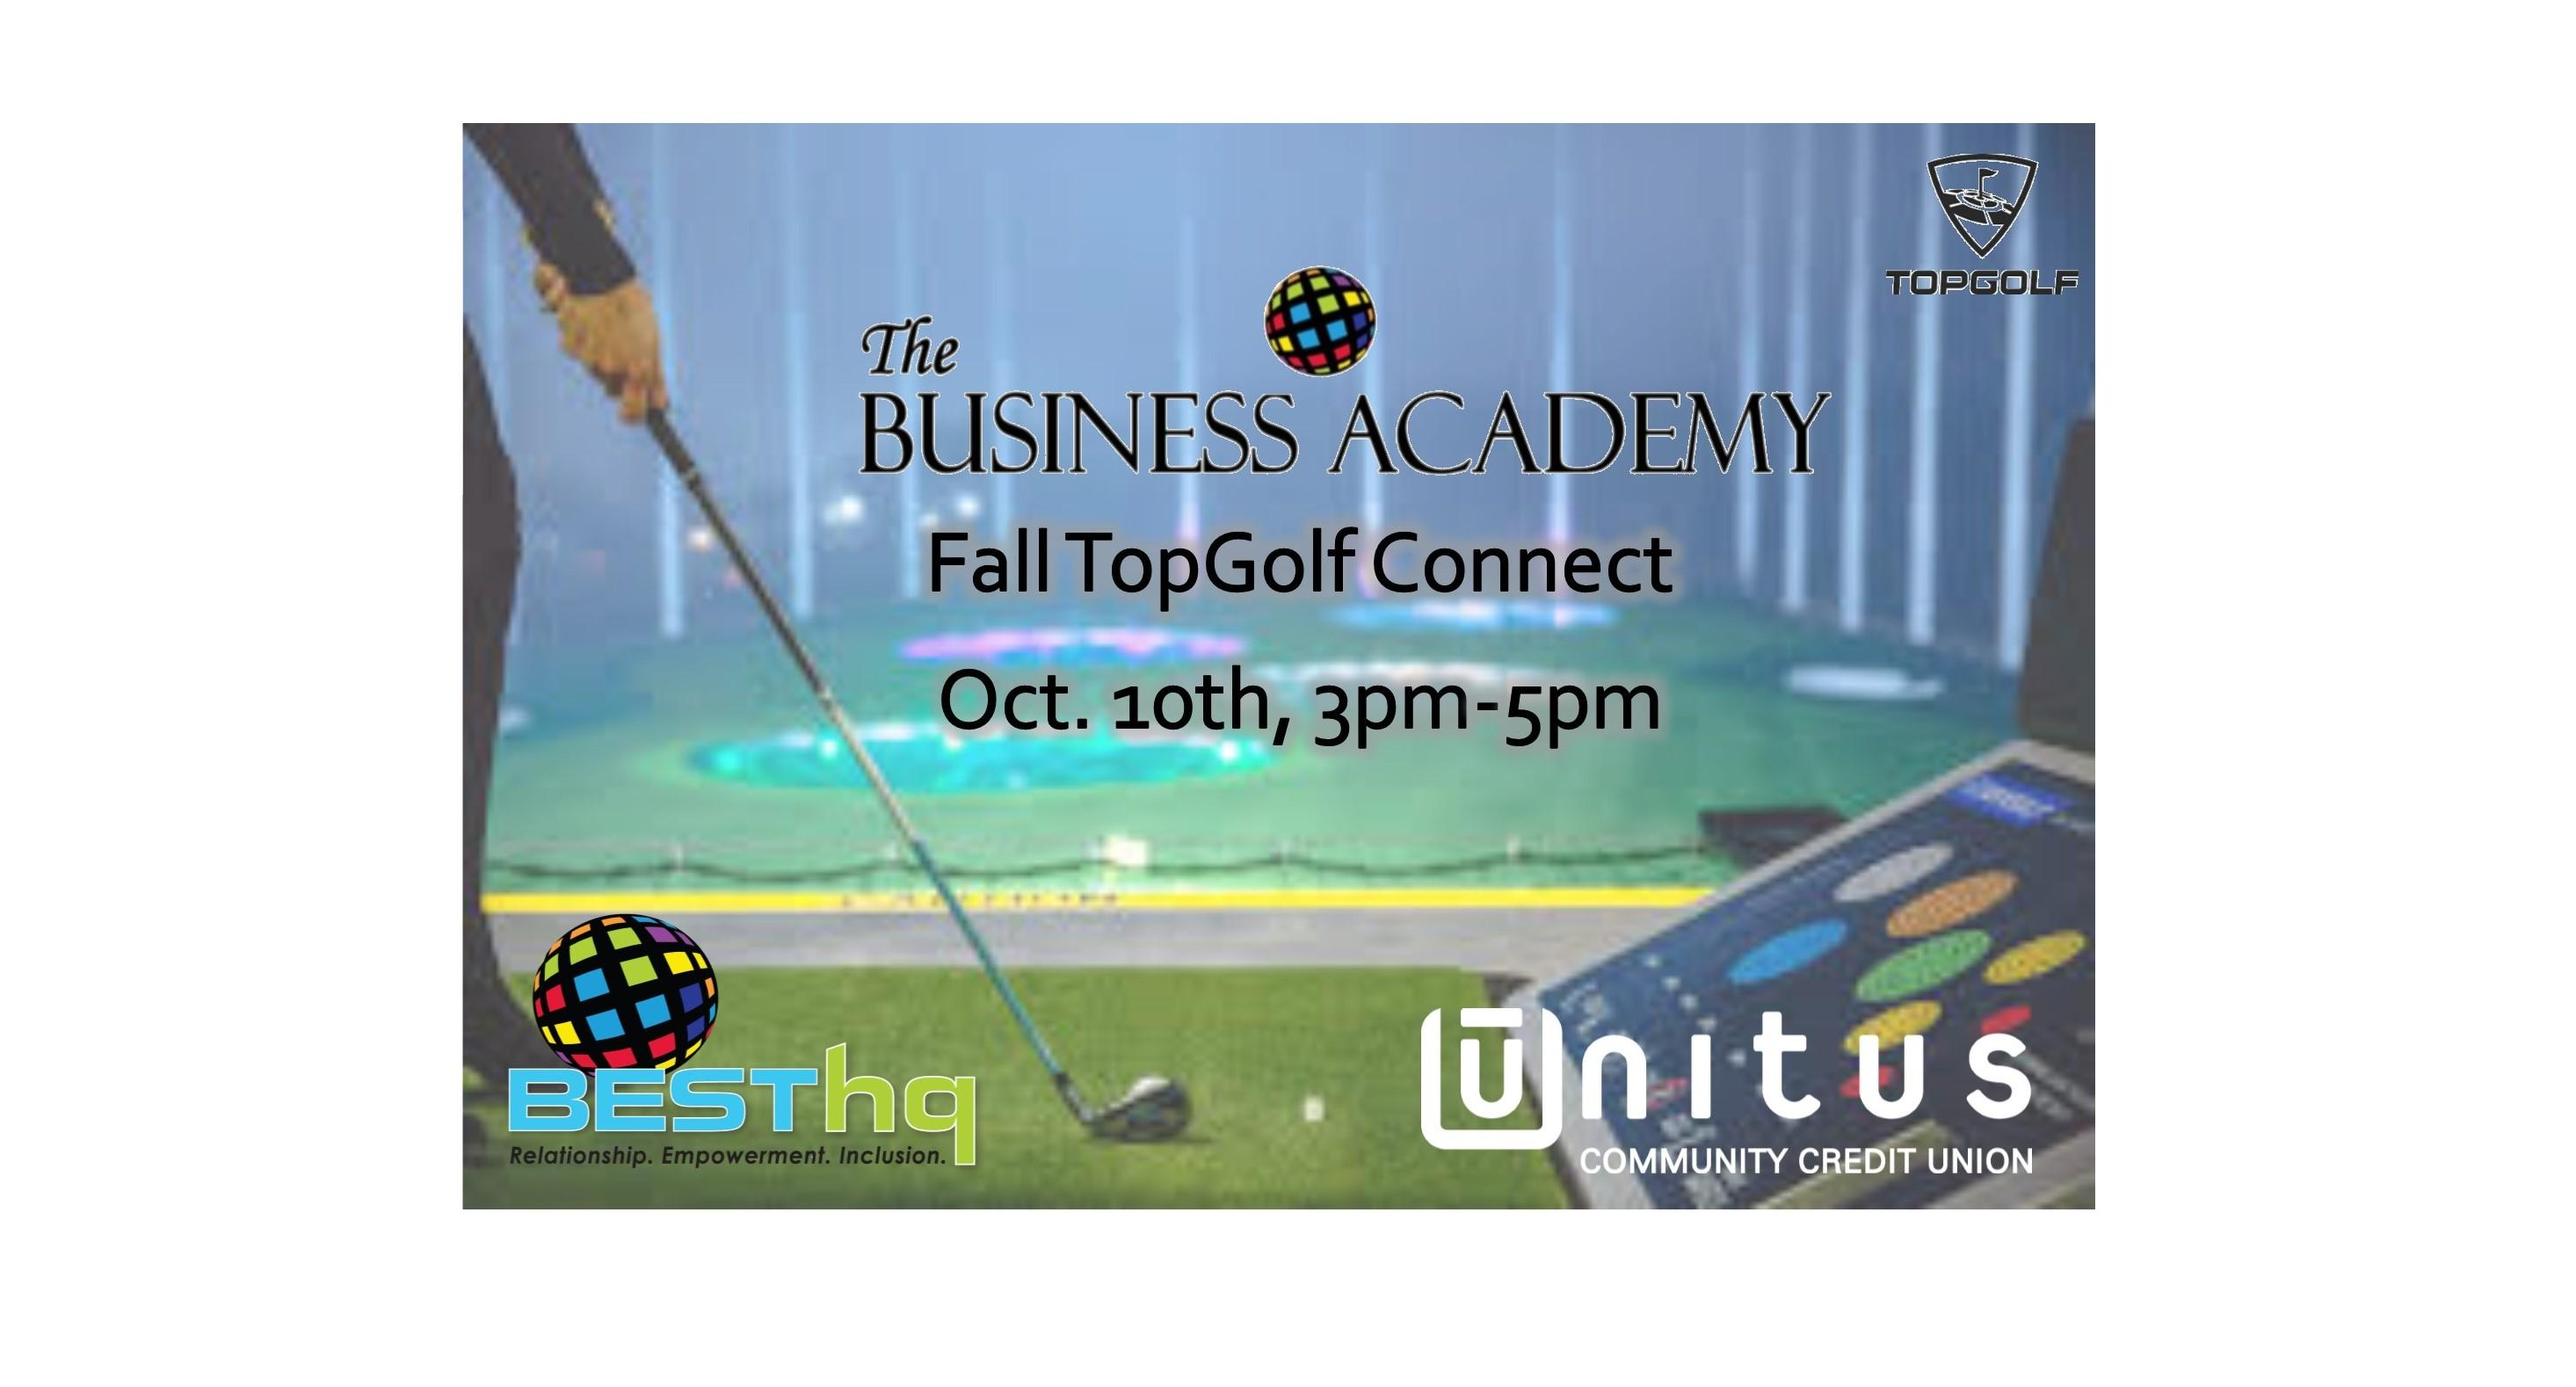 BESThq's Business Academy: Fall TopGolf Connect